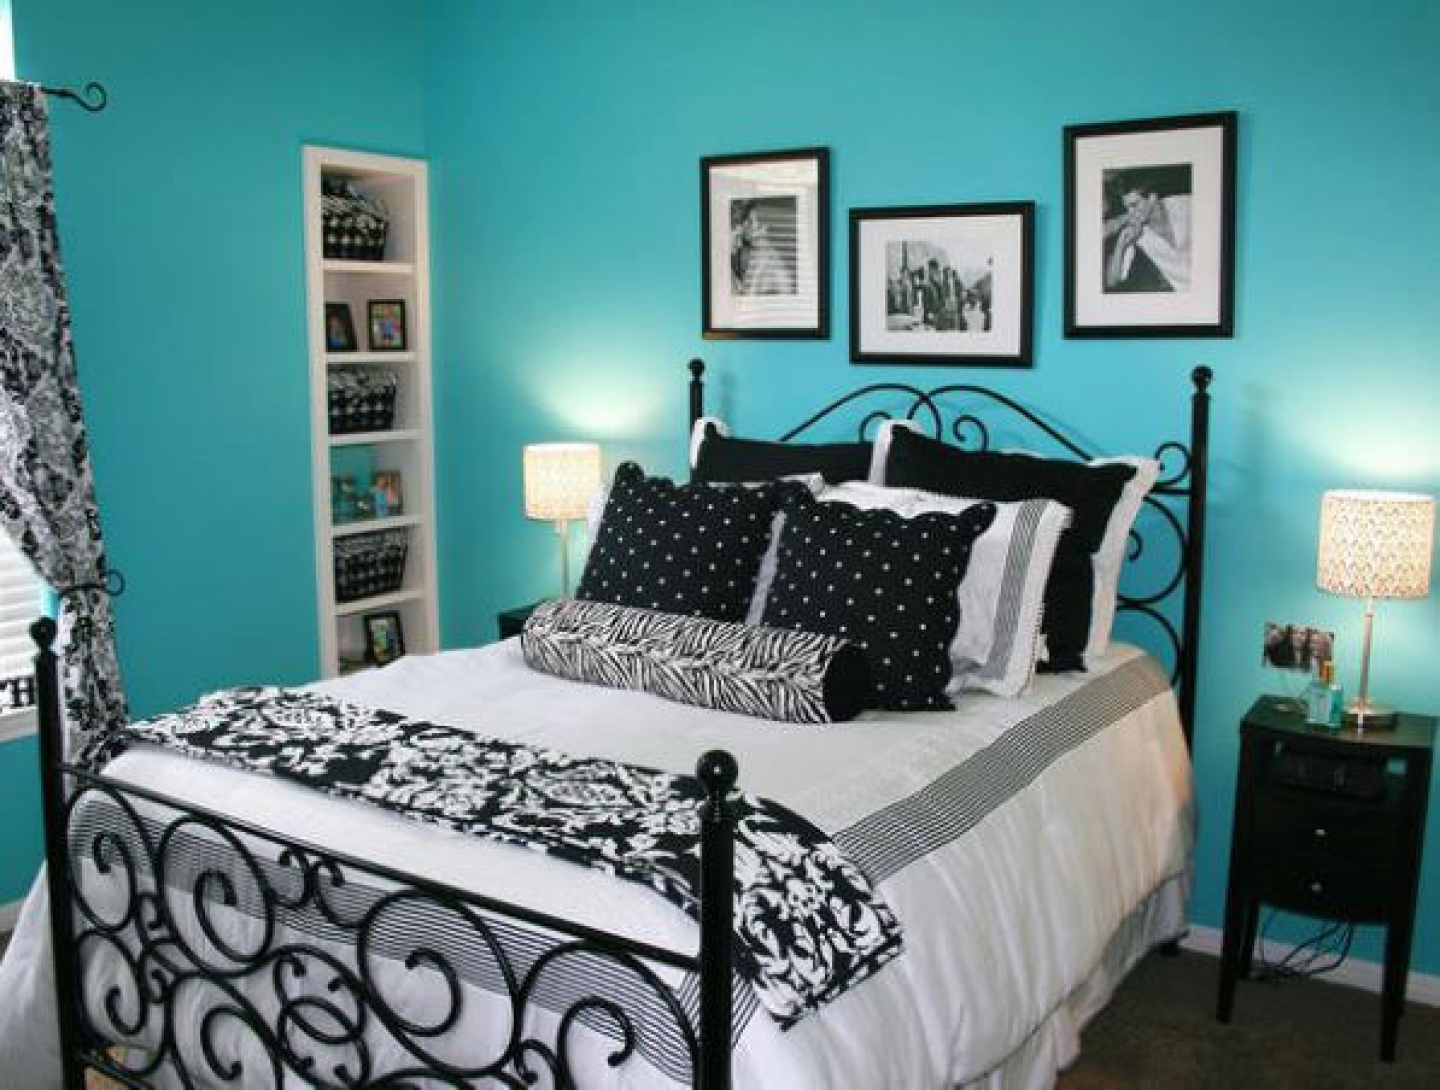 here are some popular for wall colors for bedrooms ideas there are many more bedroom decorating ideas that you can easily incorporate for awesome effects